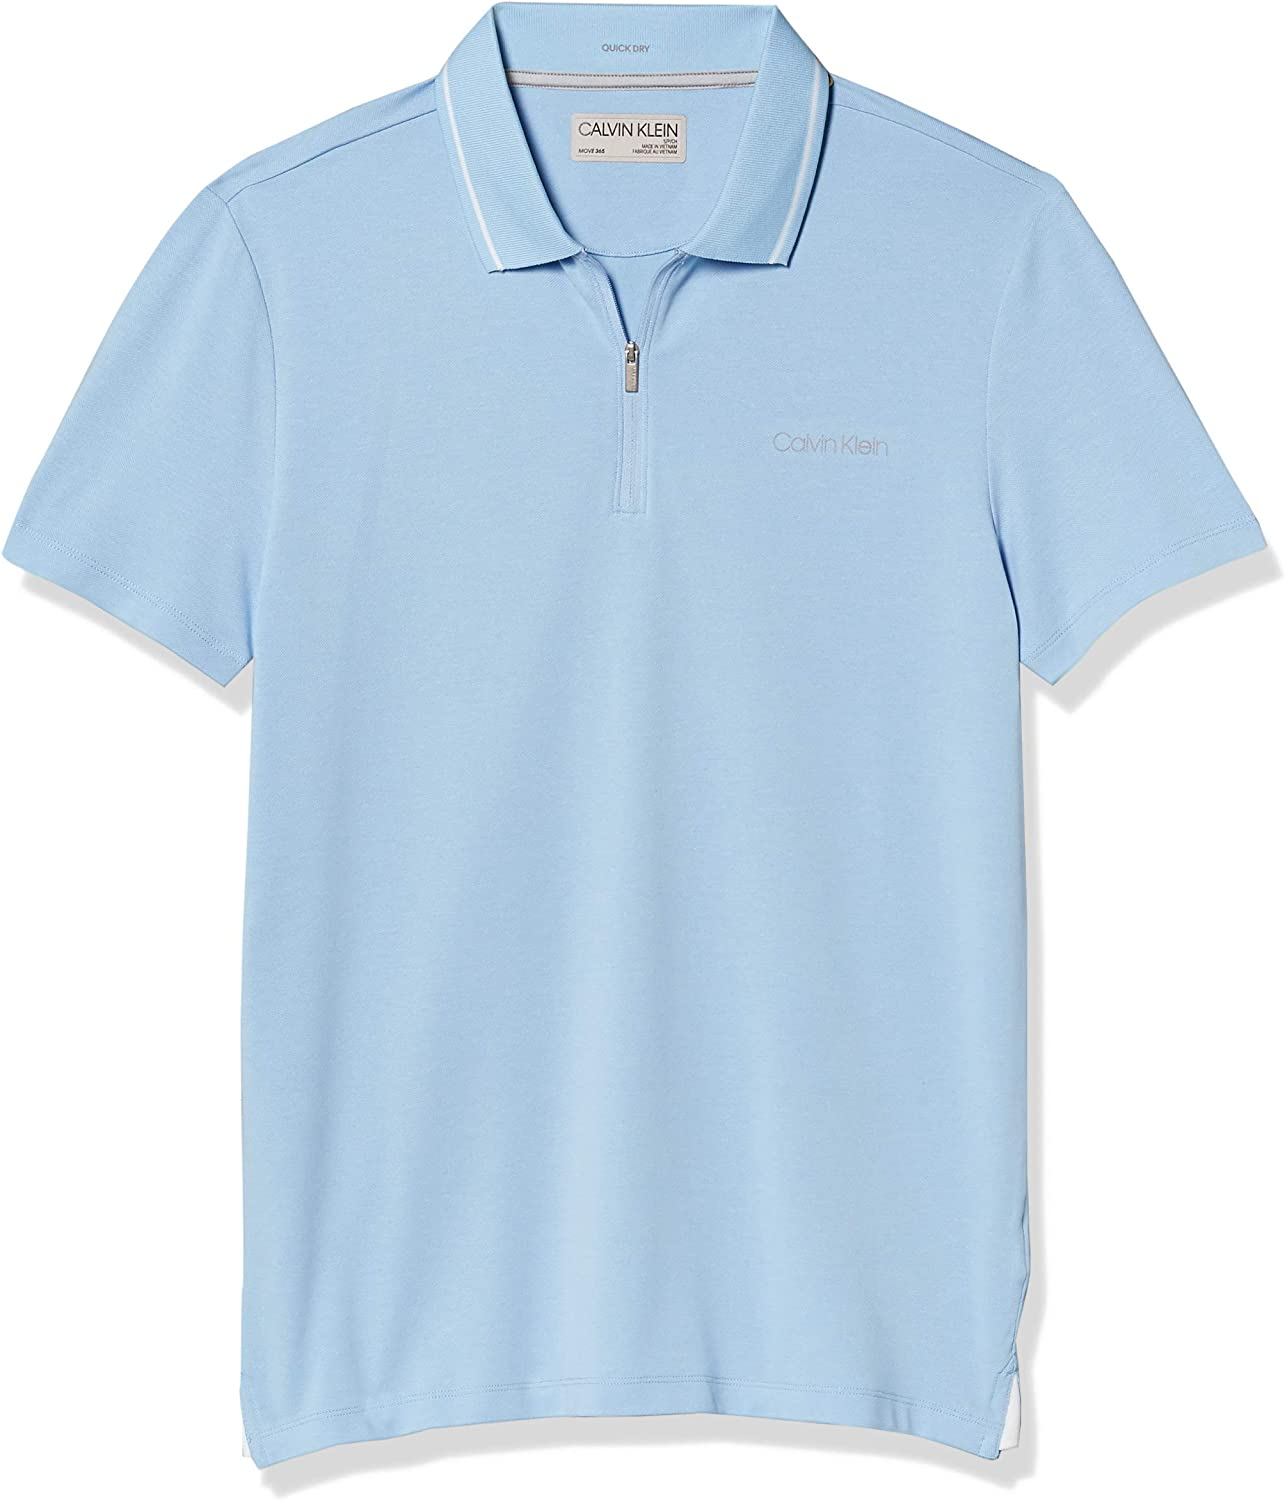 Calvin Klein Men's Inventory cleanup selling sale Move 365 Short Wick Moisture Quick Sleeve Dry Denver Mall